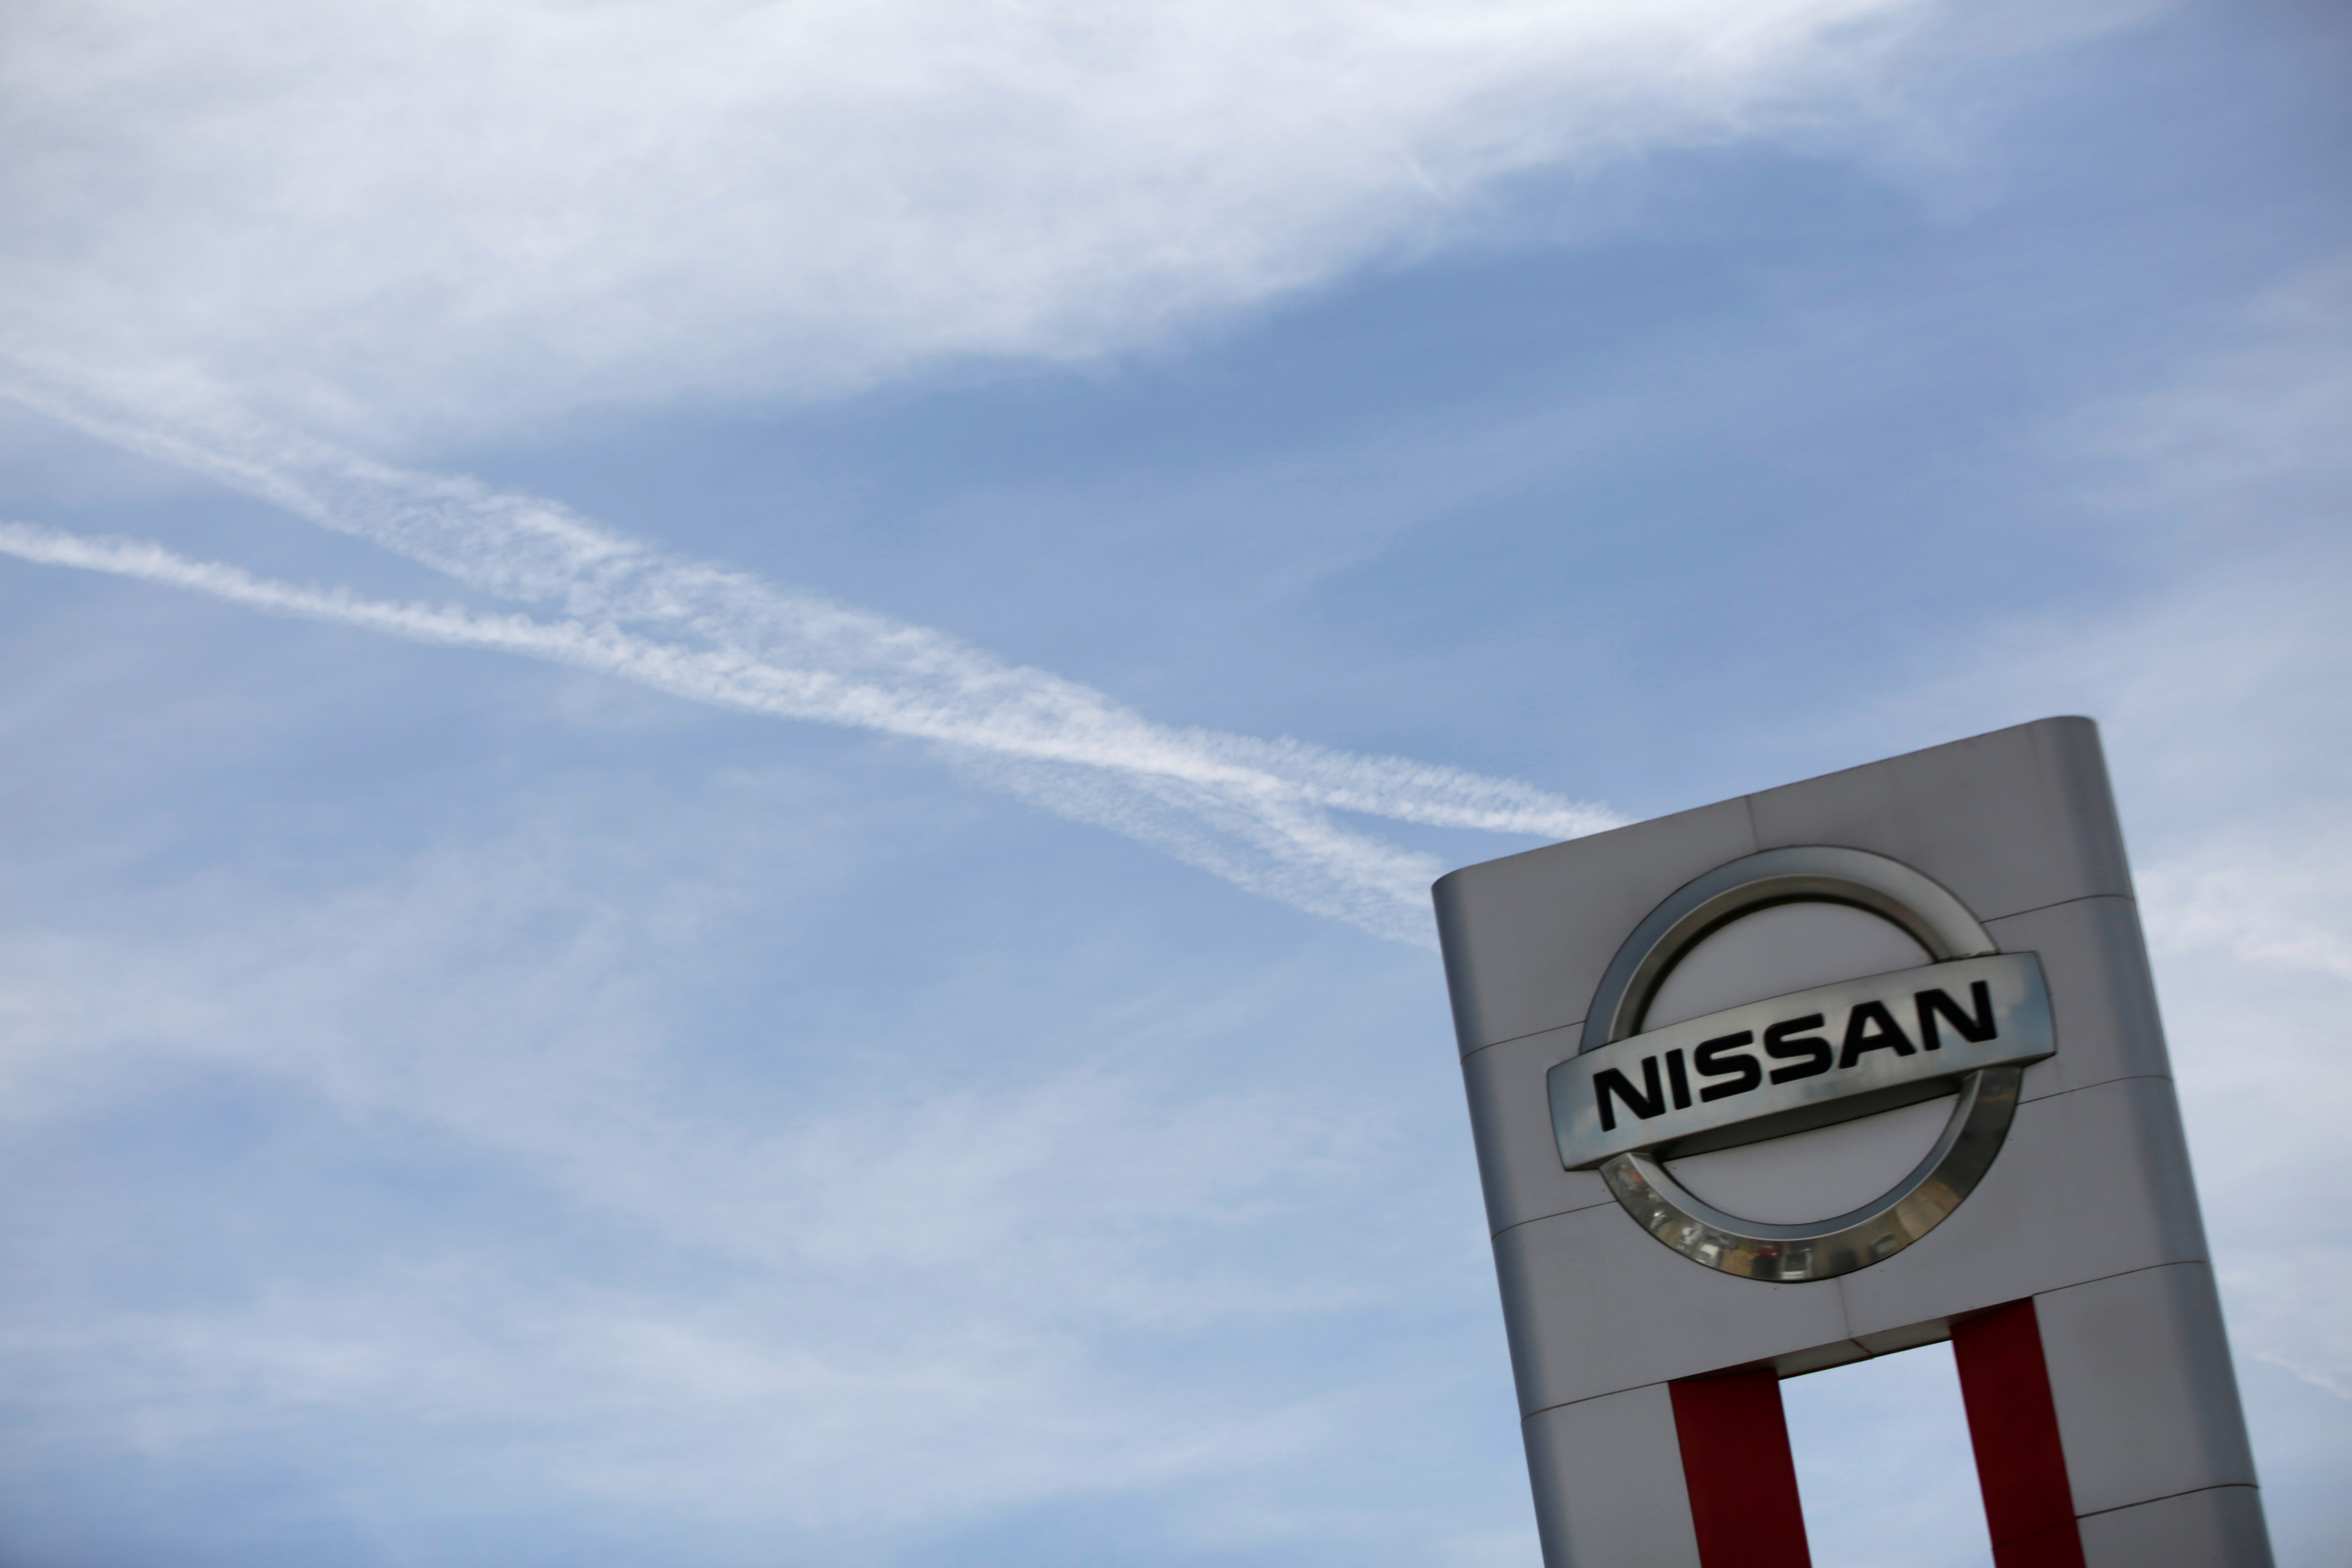 A Nissan logo is seen at a car dealership in Ciudad Juarez, Mexico May 30, 2017. Picture taken May 30, 2017. REUTERS/Jose Luis Gonzalez